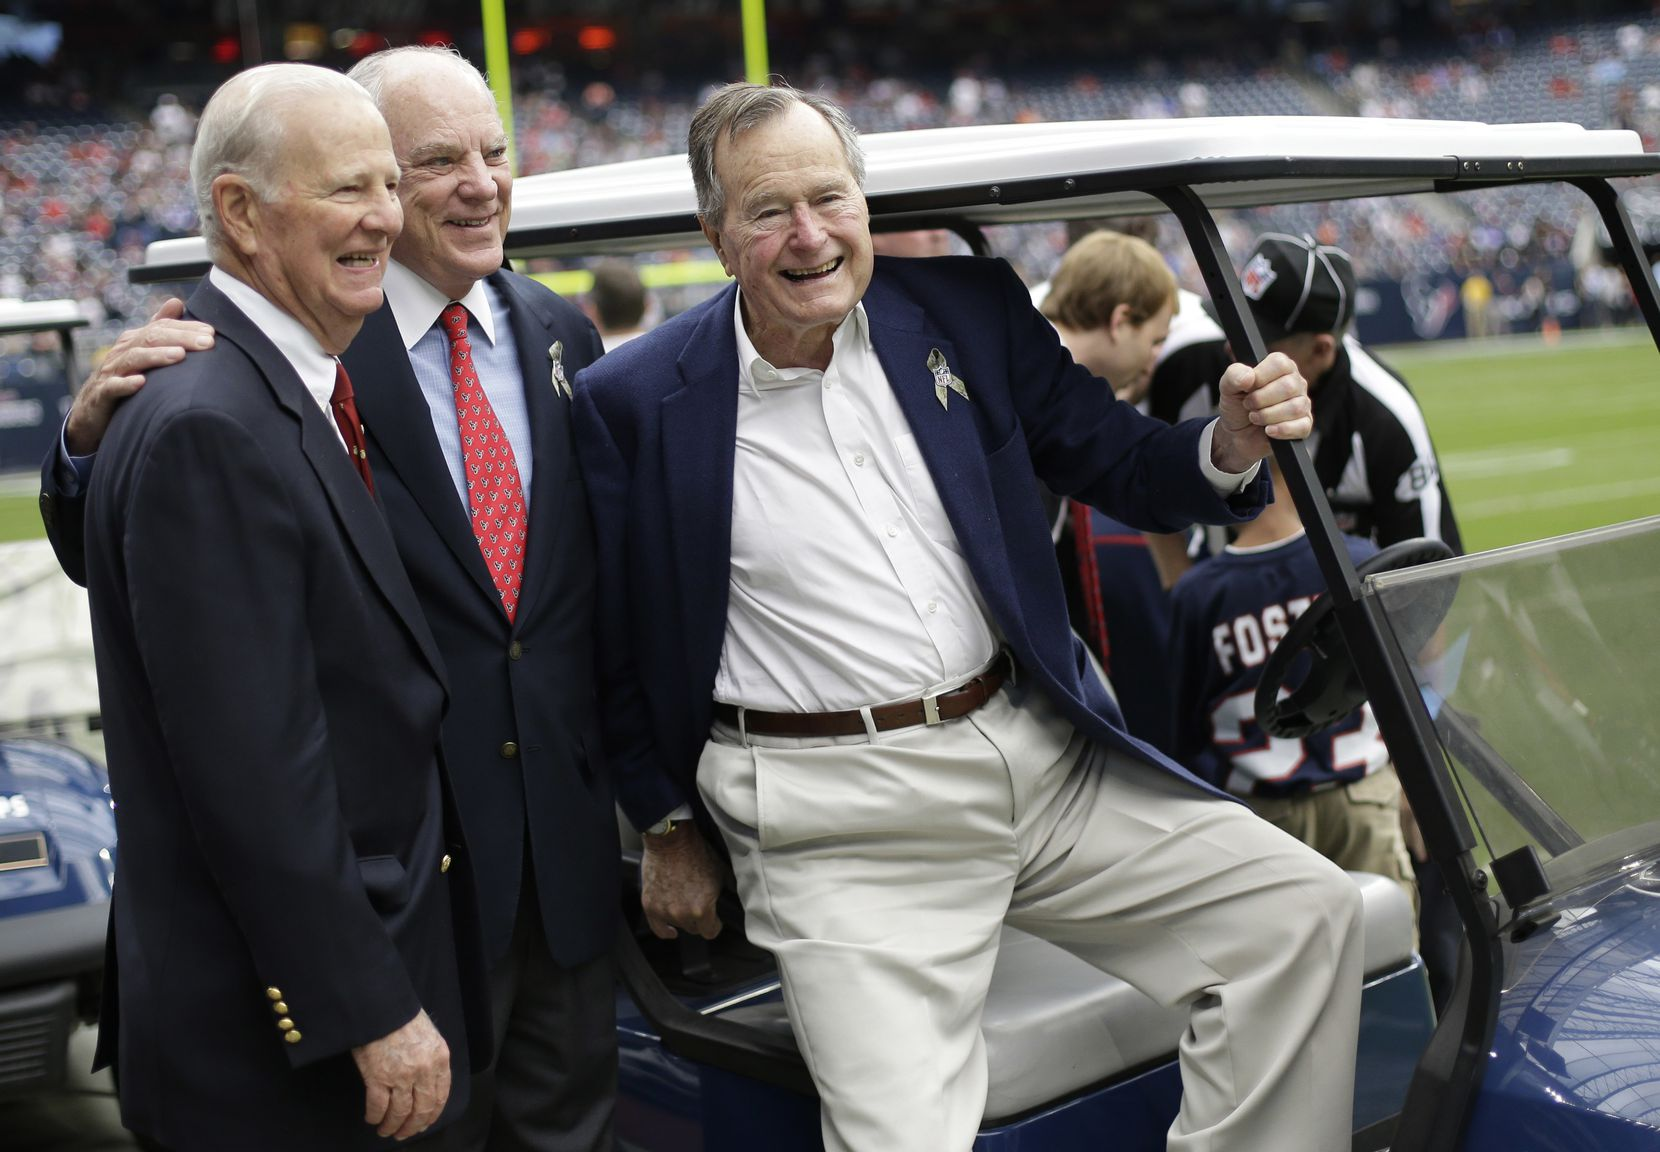 Former President George H.W. Bush (right) shown in a 2012 sideline appearance at a Houston Texans game with his close partner in politics, former Secretary of State James Baker (left), and team owner Bob McNair, was an indefatigable booster of the Republican brand in a state dominated by Democrats when he moved to Texas after World War II.